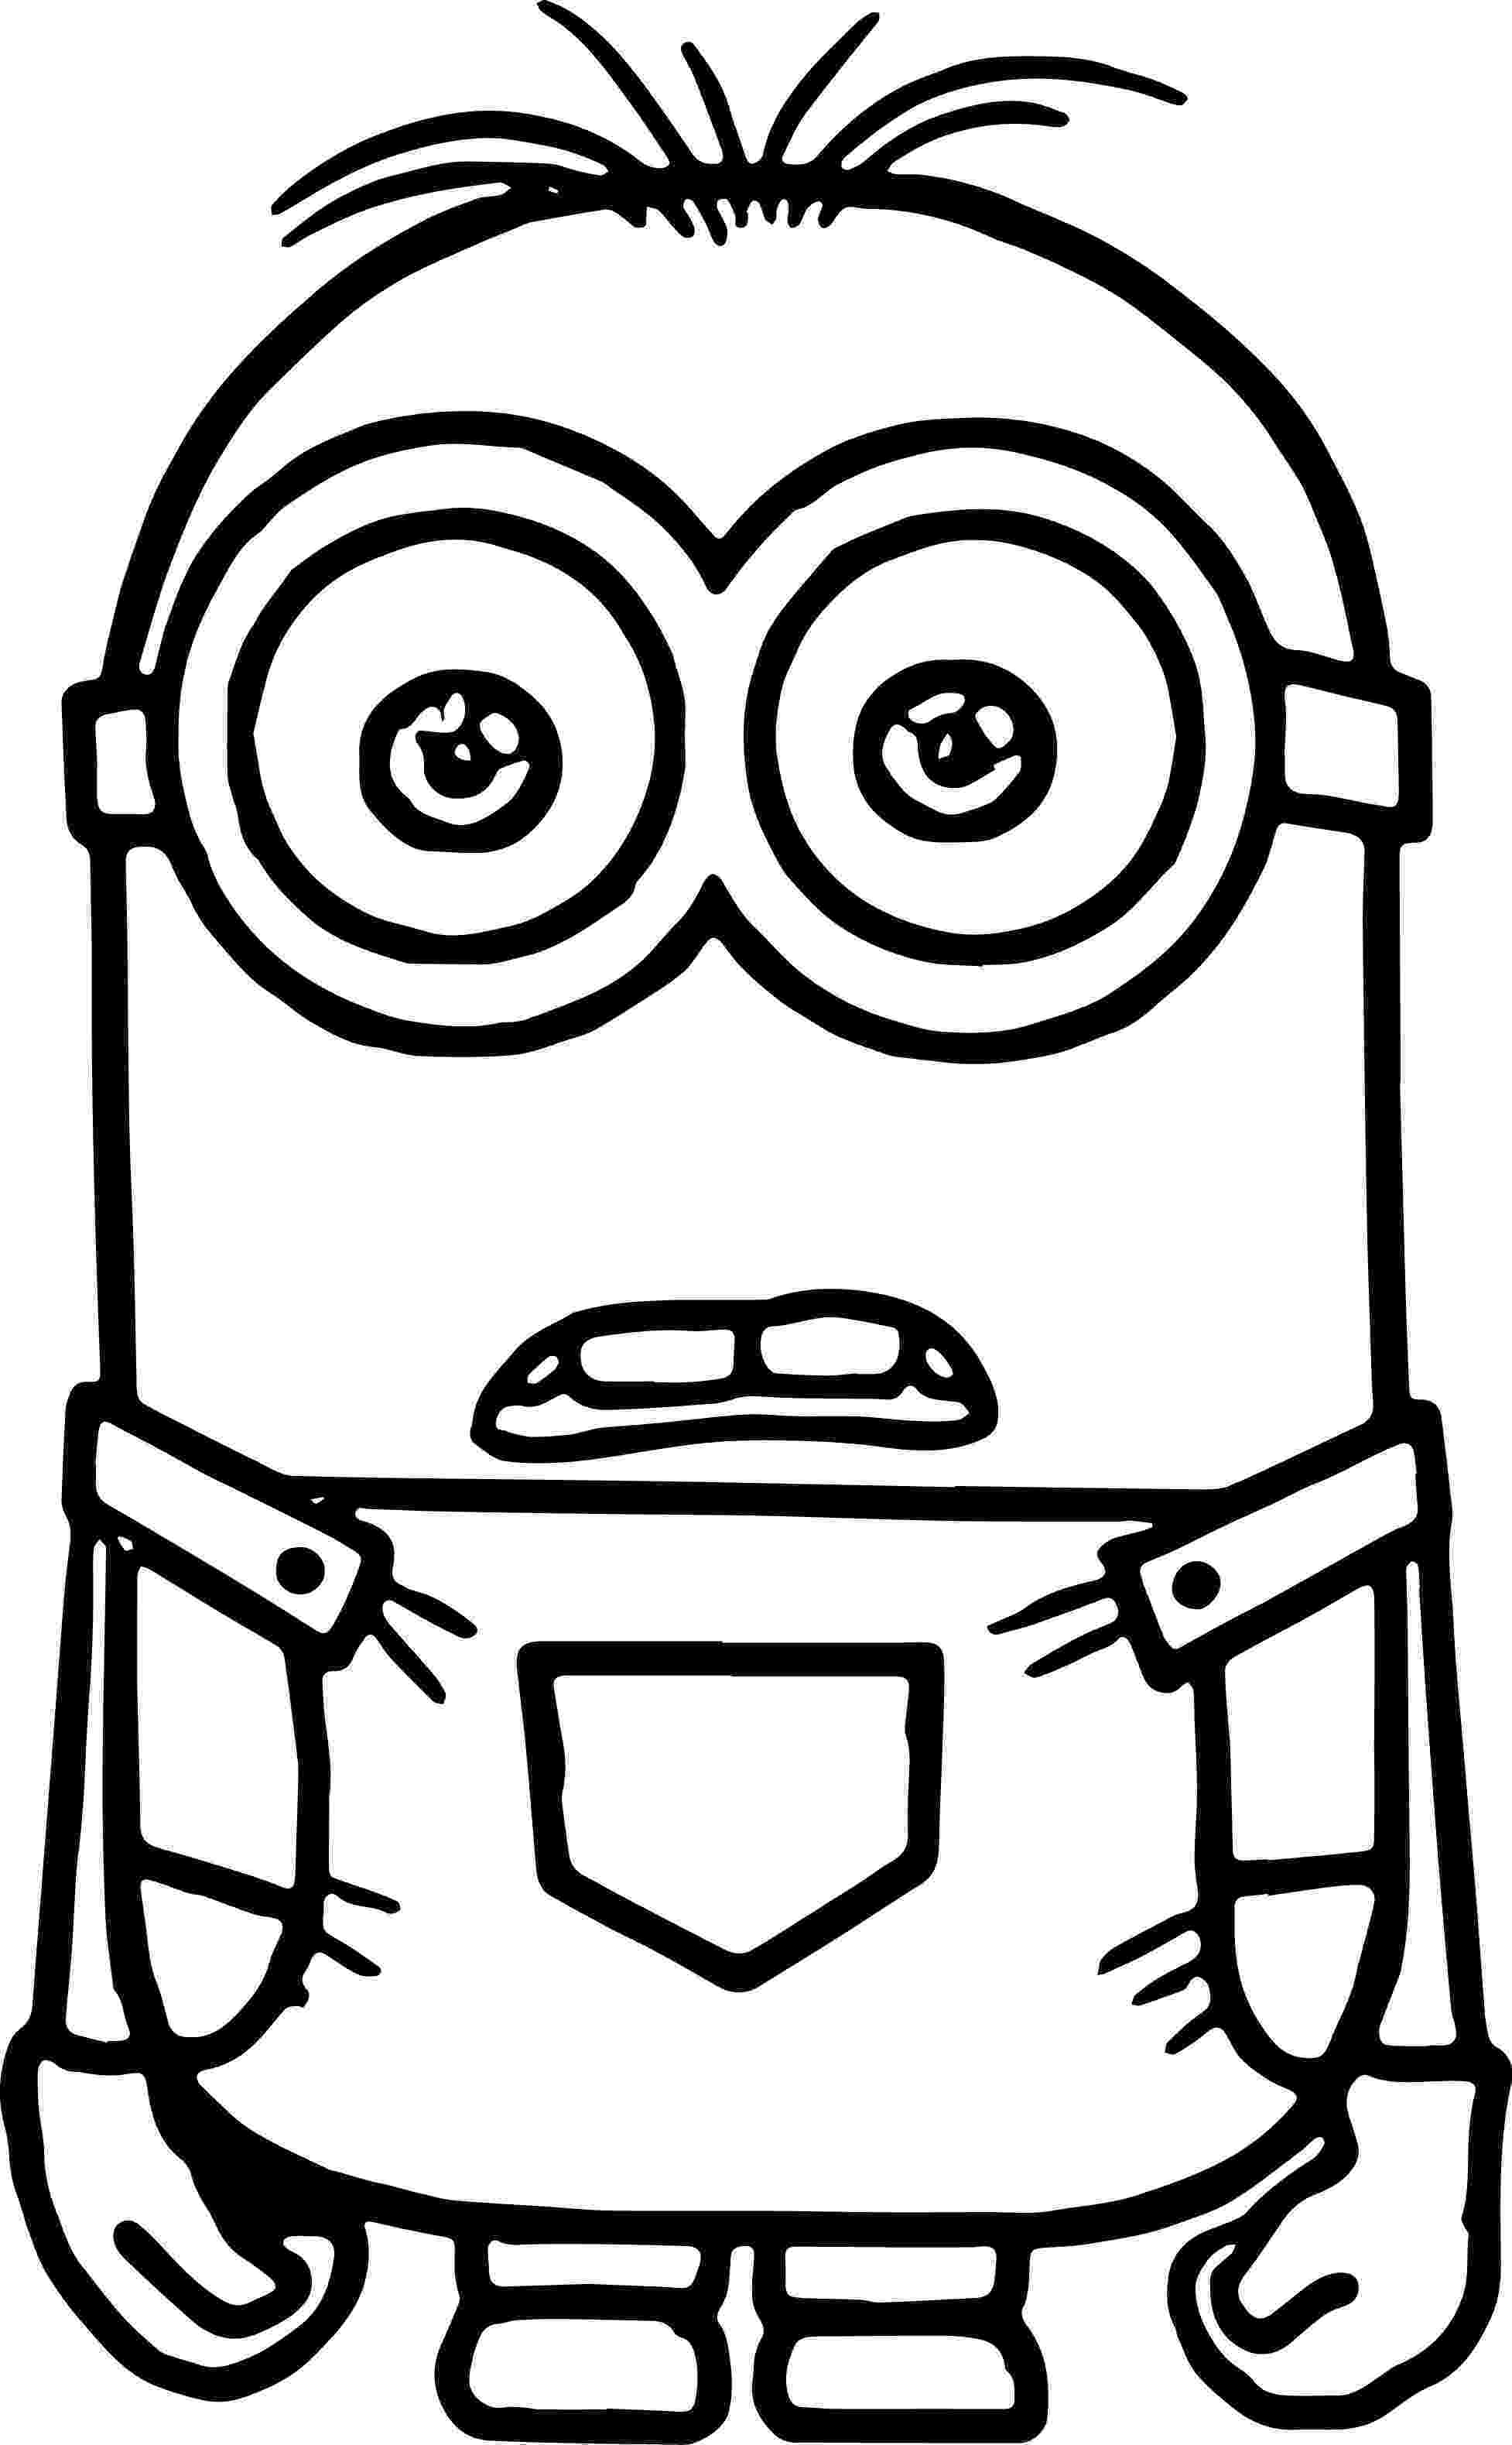 coloring pictures black and white 40 free printable lol surprise dolls coloring pages cool black coloring and white pictures